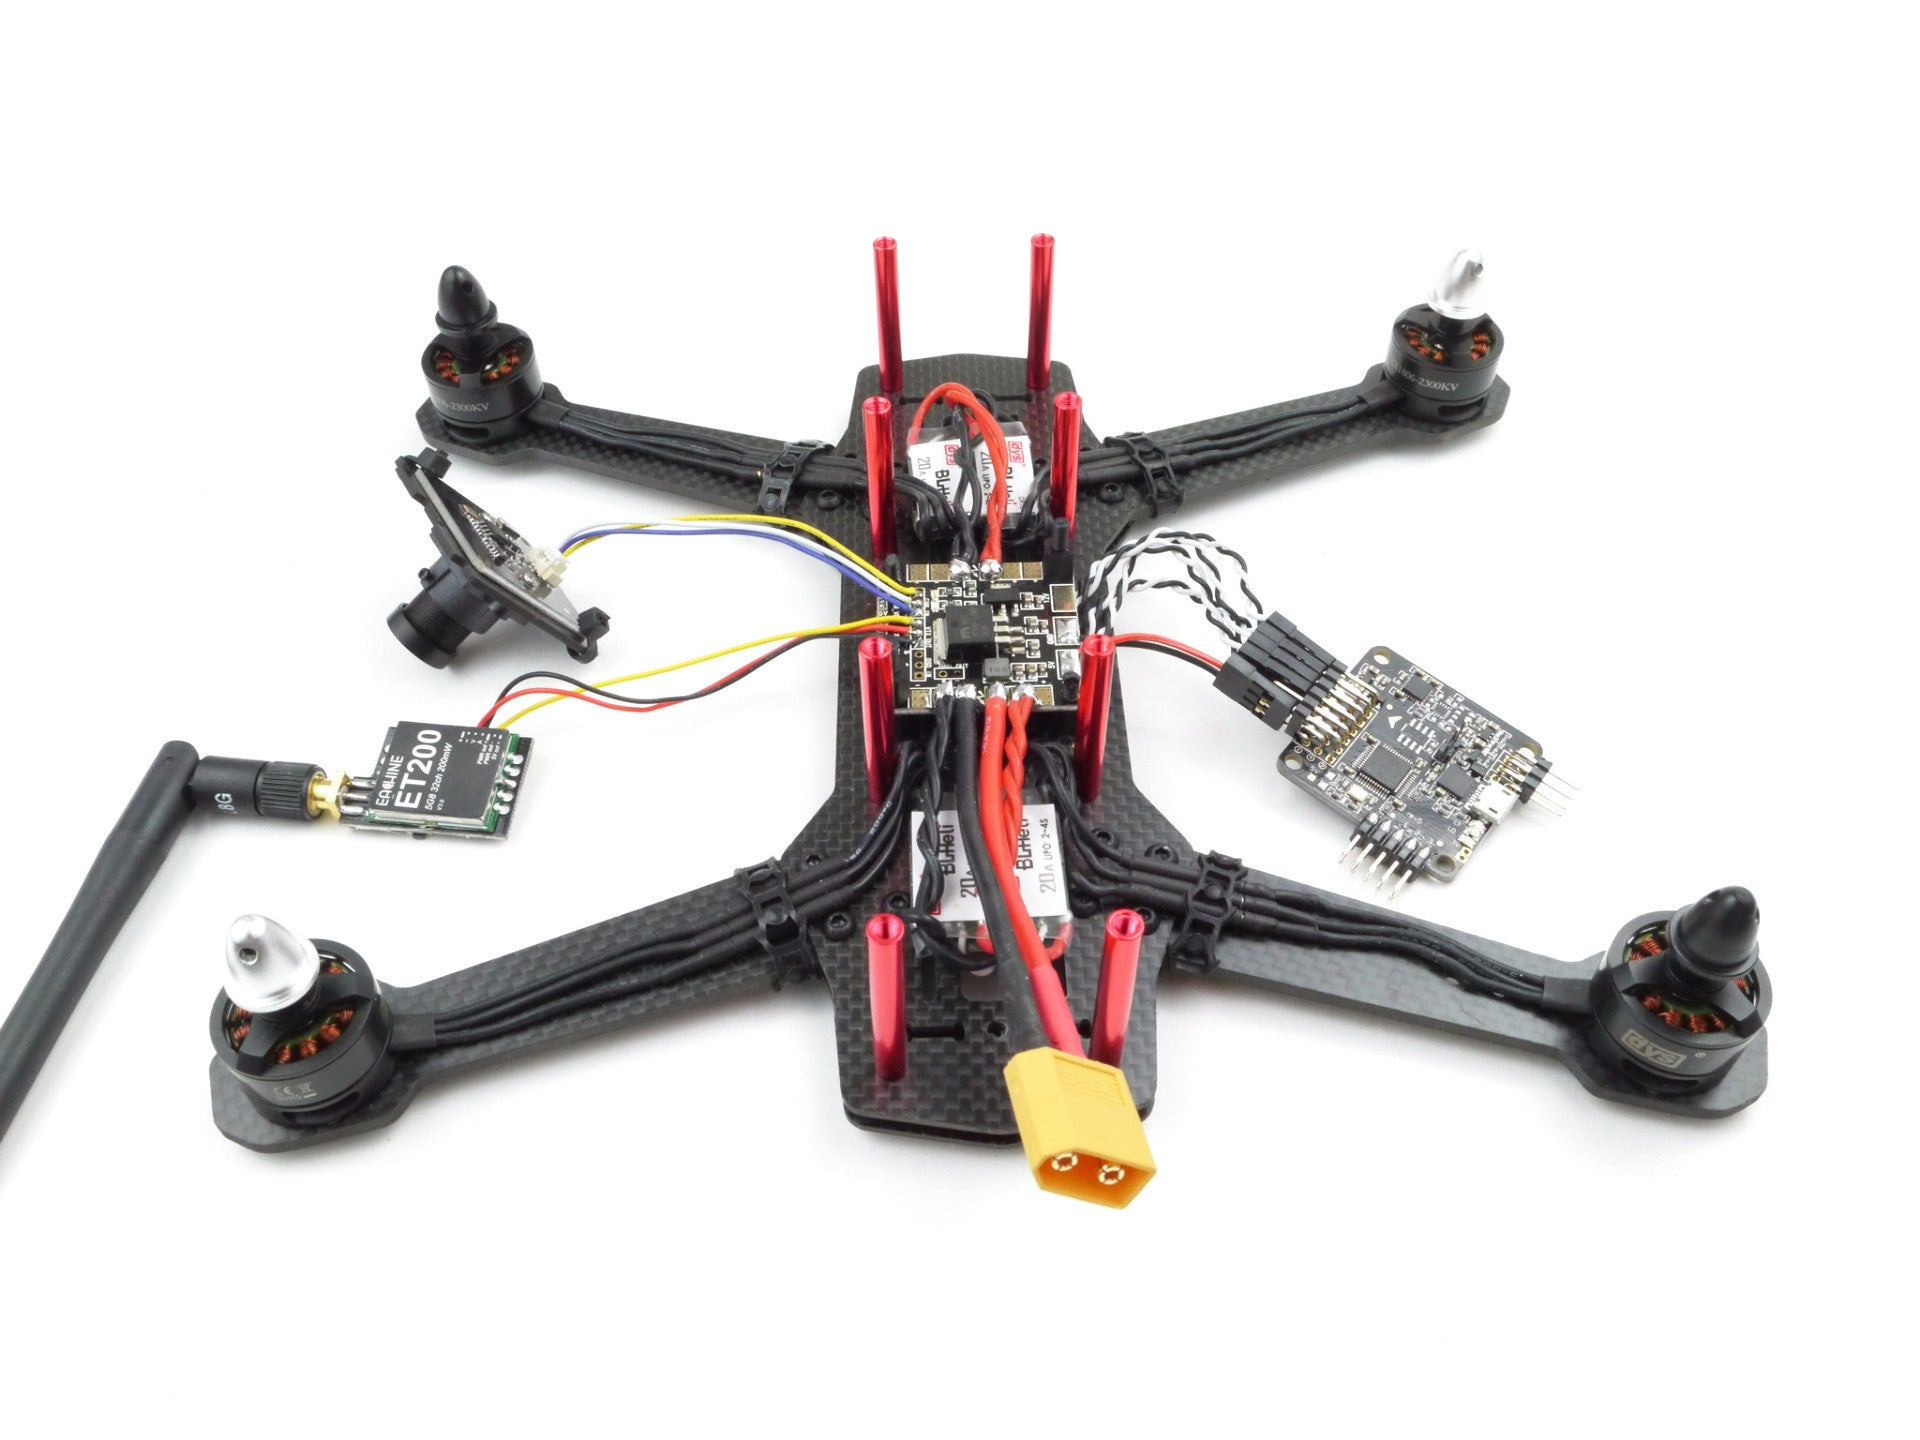 Mini Quad Bros specializes in cheap mini quadcopter packages